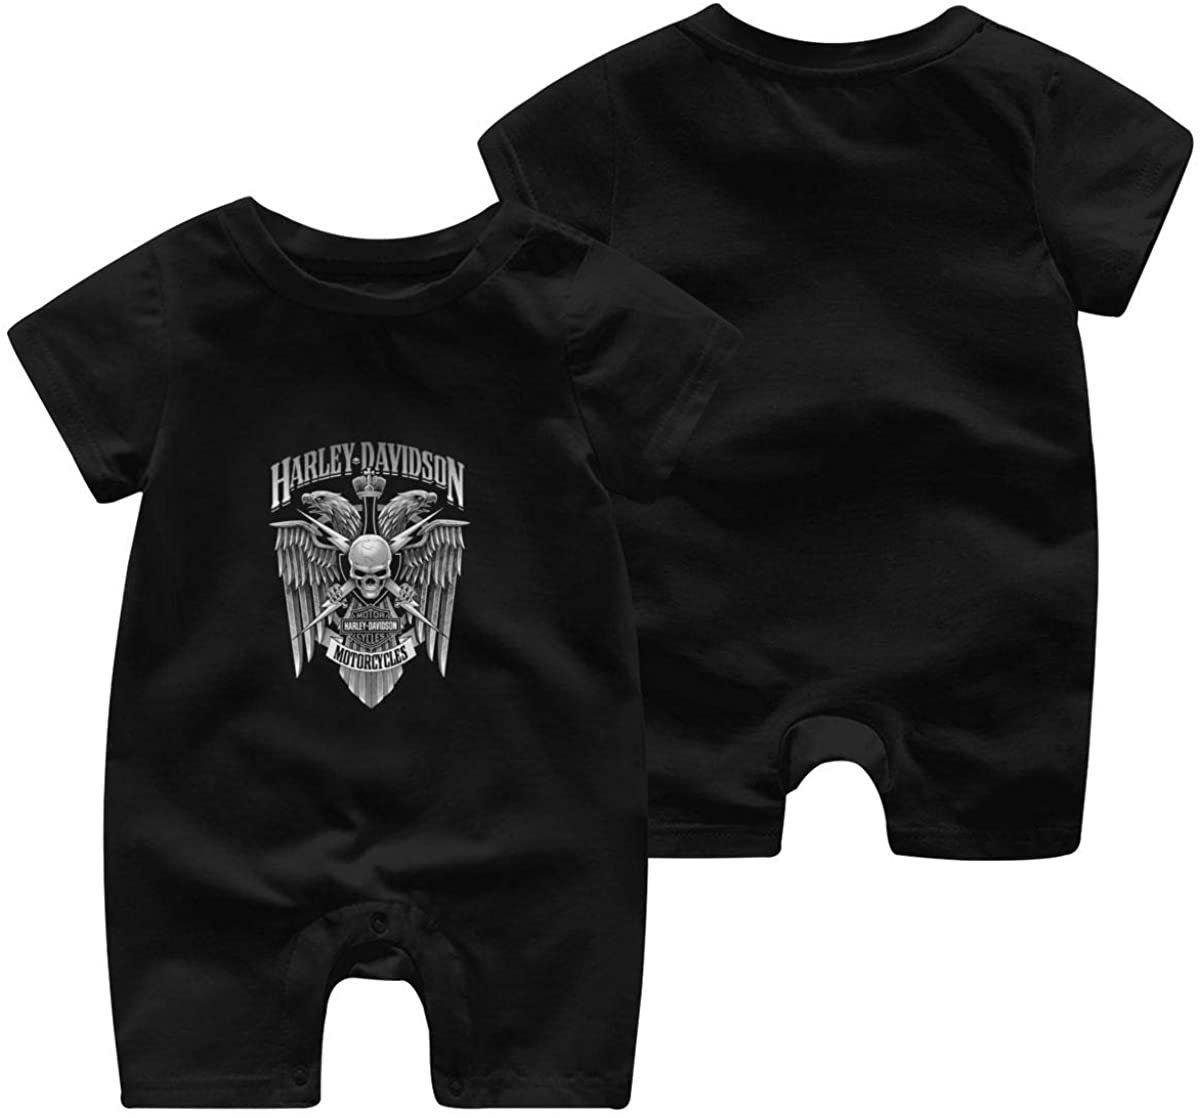 Harley Davidson One Piece Outfits Baby Solid Color Rompers with Button Kids Short Sleeve Playsuit Jumpsuits Cotton Clothing 0-3 Months Black